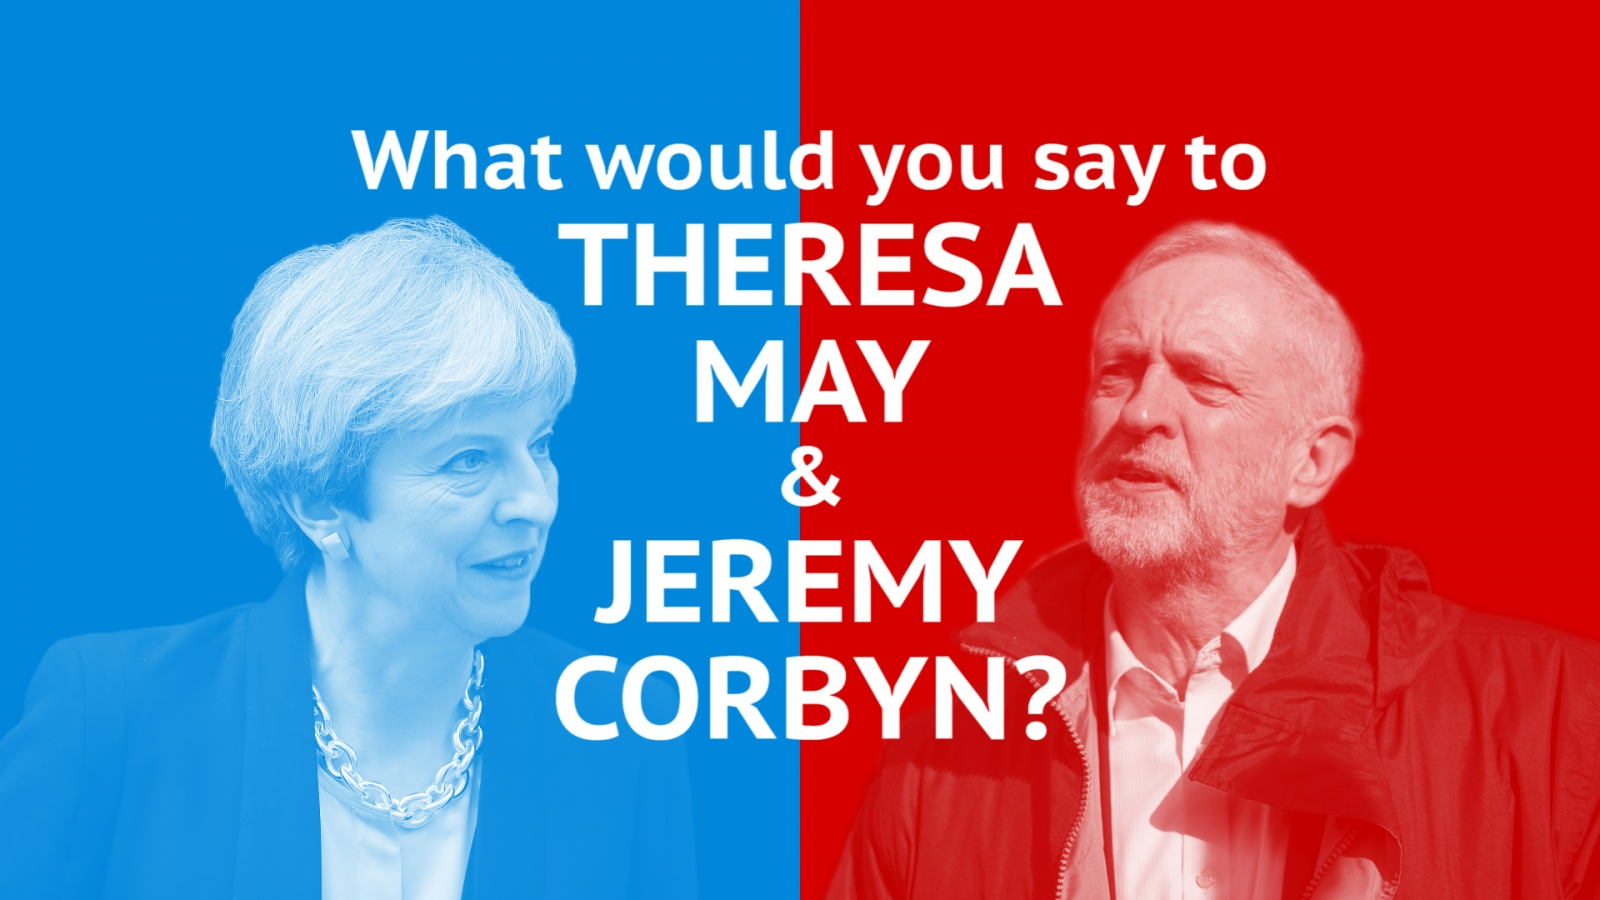 What Would You Say If You Met Theresa May Or Jeremy Corbyn?